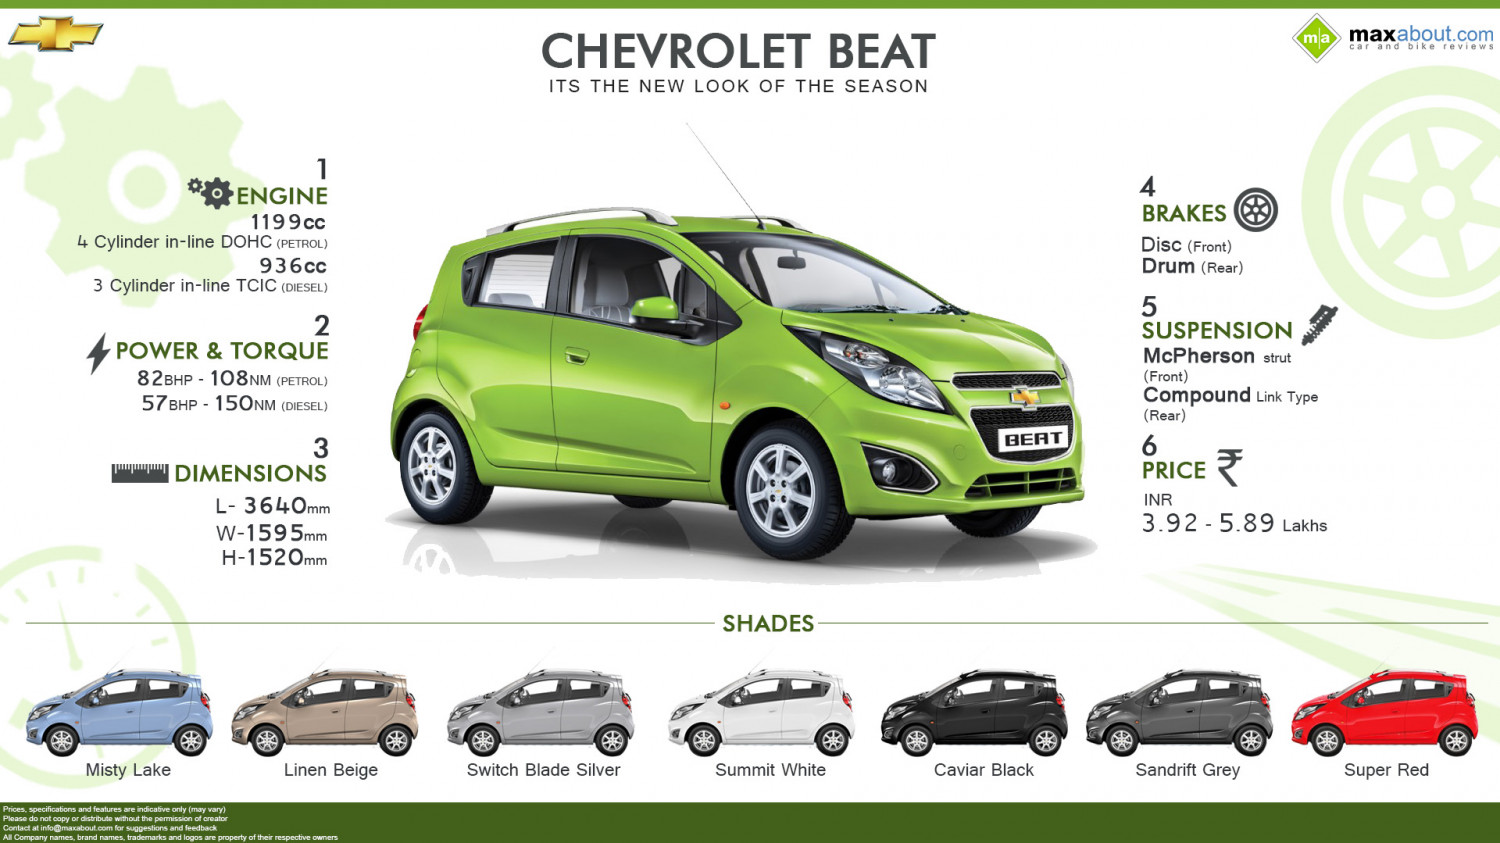 Chevrolet Beat: Quick Facts Infographic